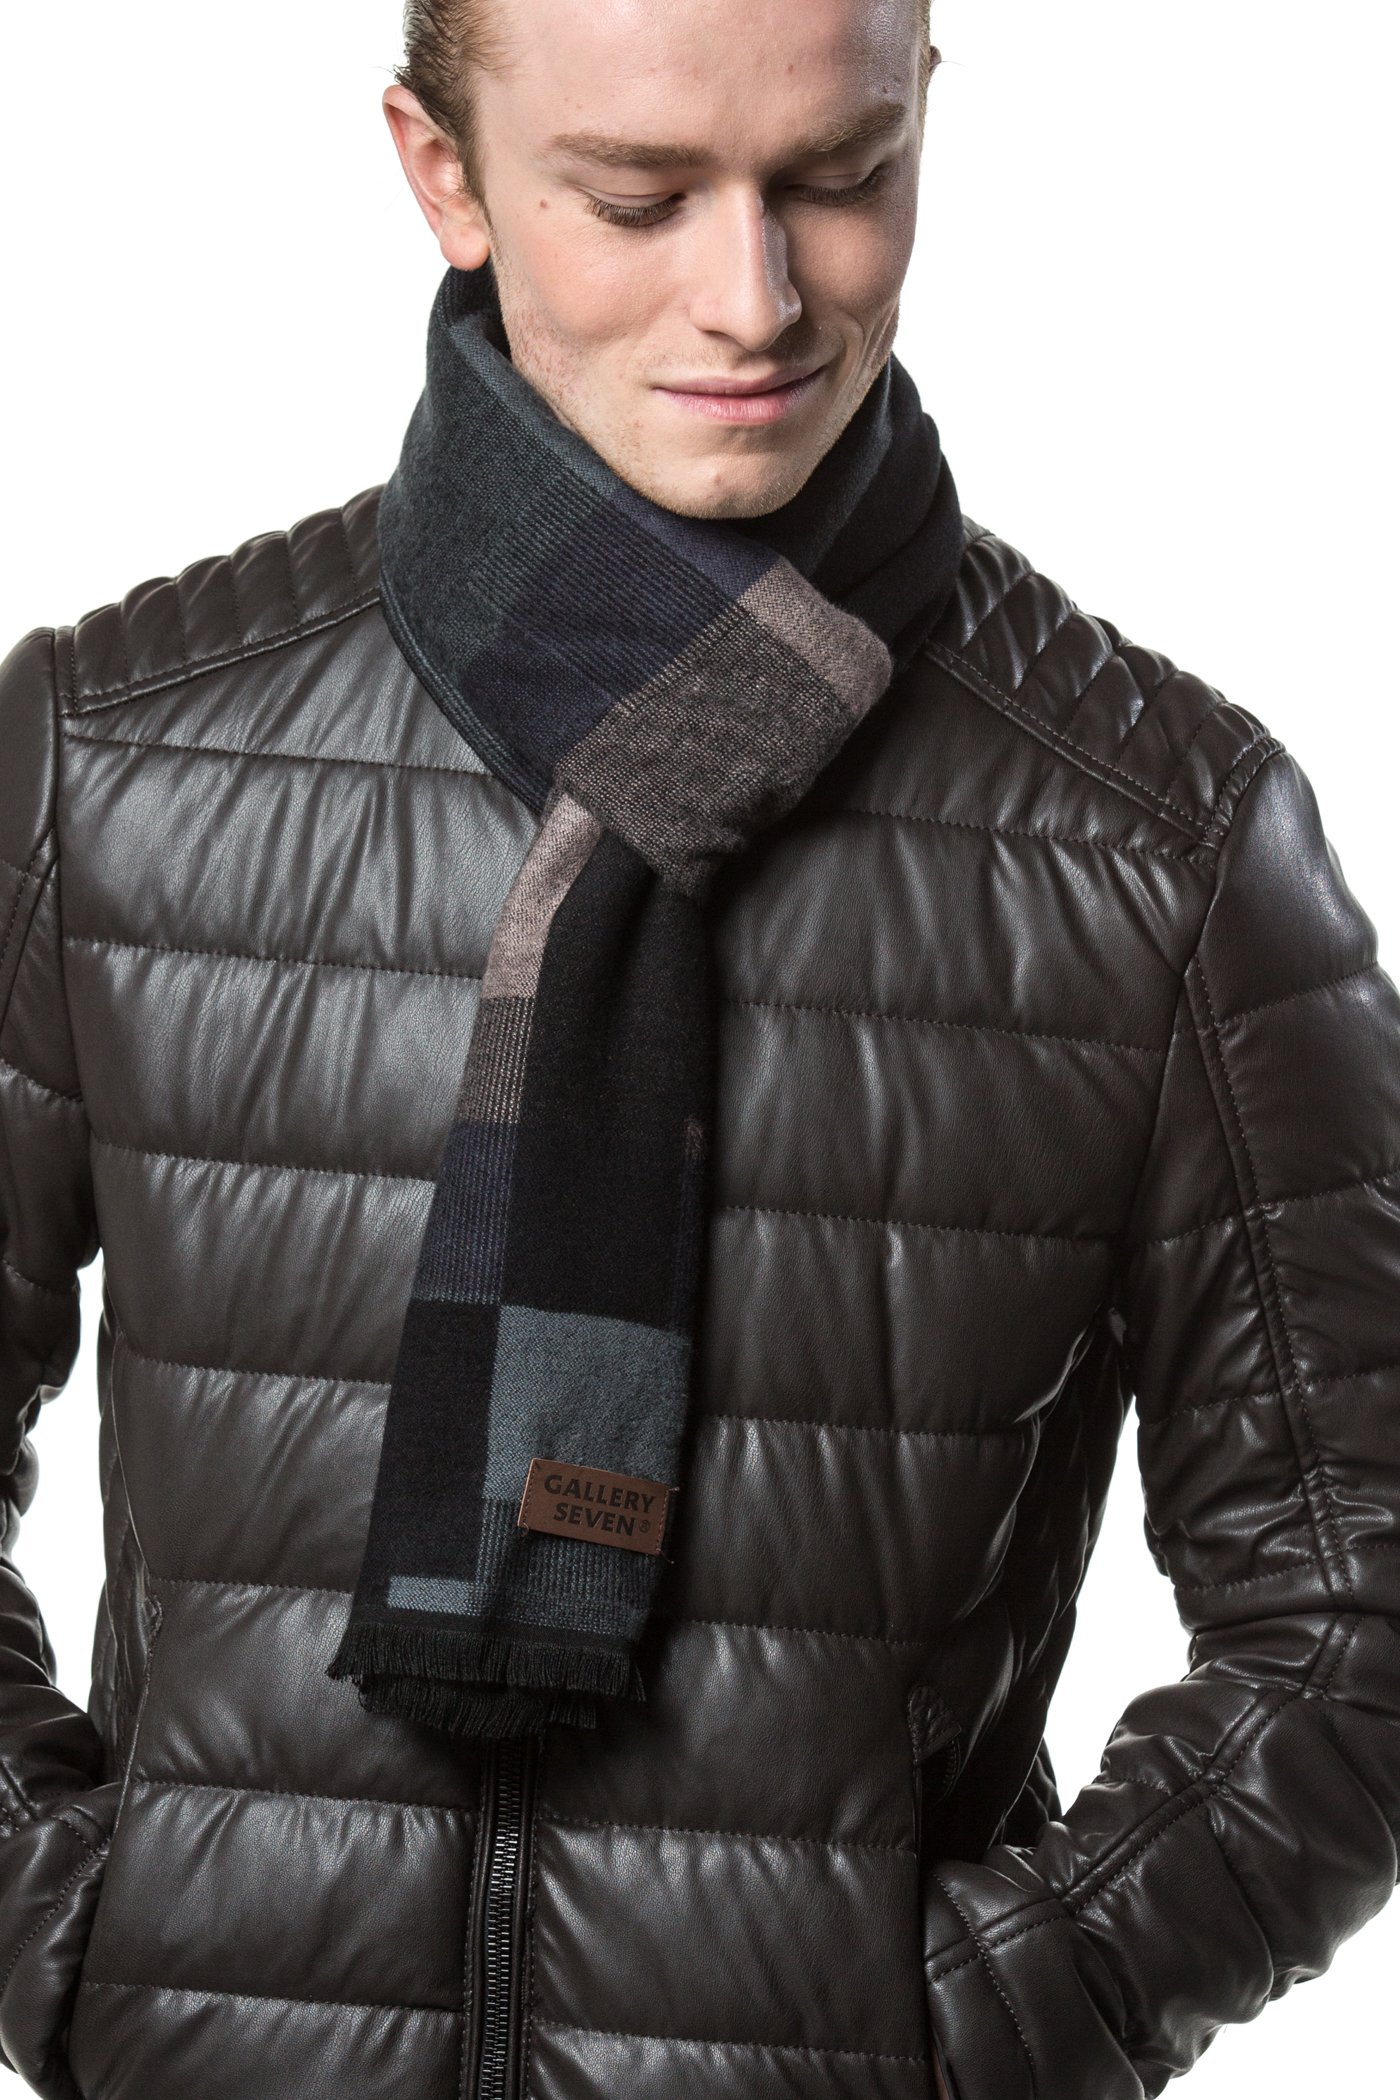 Gallery Seven Mens Scarf - 100% Cotton Winter Scarves fo Men - Elegantly Gift Wrapped - Hex